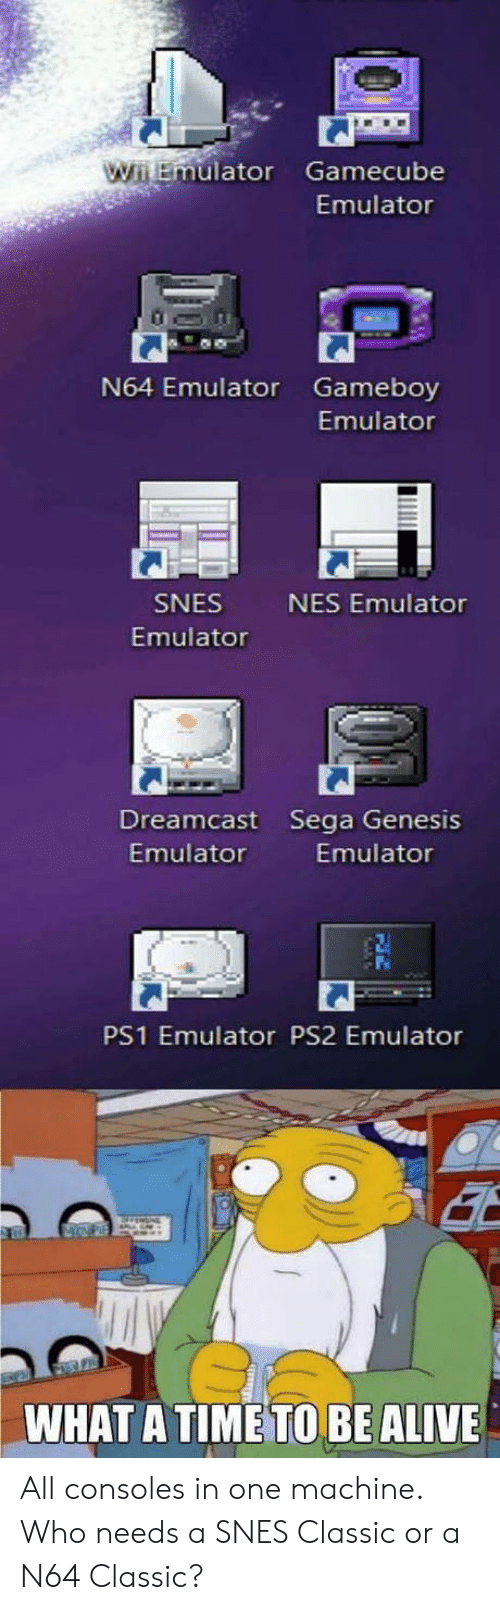 ps1: uator Gamecube  Emulator  N64 Emulator Gameboy  Emulator  SNES  Emulator  NES Emulator  Dreamcast Sega Genesis  Emulator  Emulator  PS1 Emulator PS2 Emulator  WHAT A TIME TO BE ALIVE All consoles in one machine. Who needs a SNES Classic or a N64 Classic?